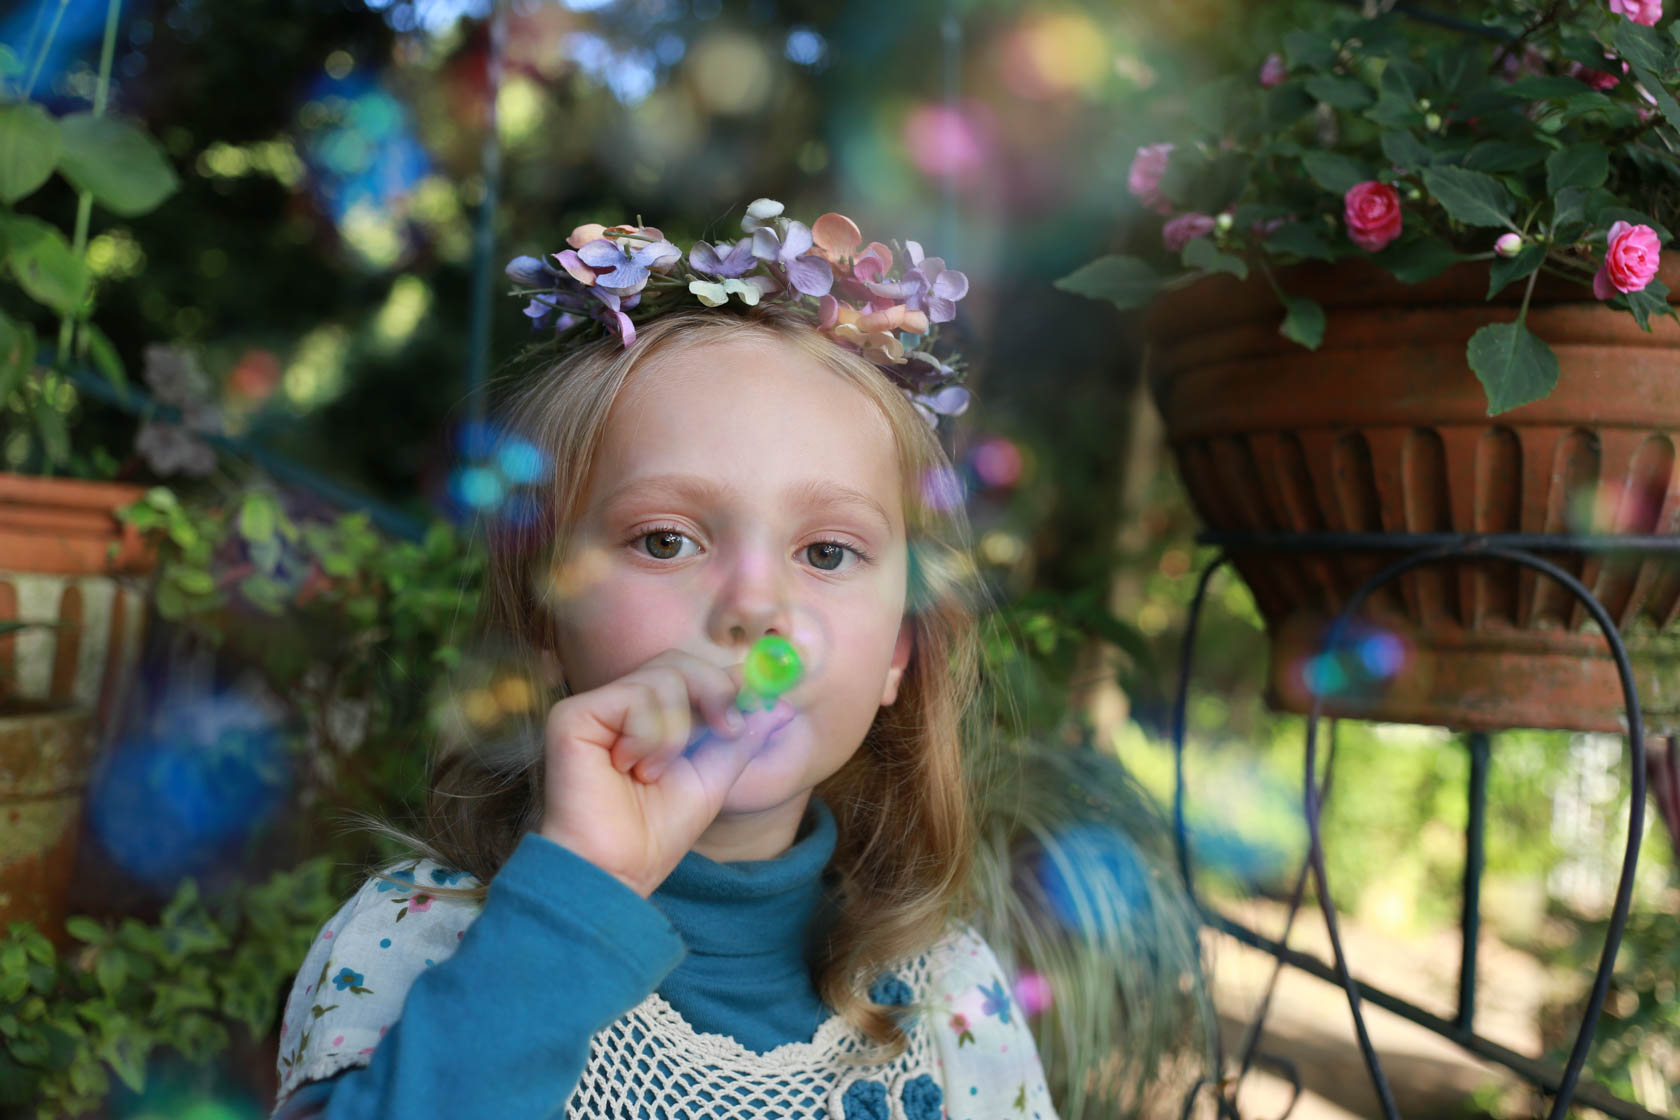 Girl blowing bubbles taken with Canon EOS 6D DSLR camera